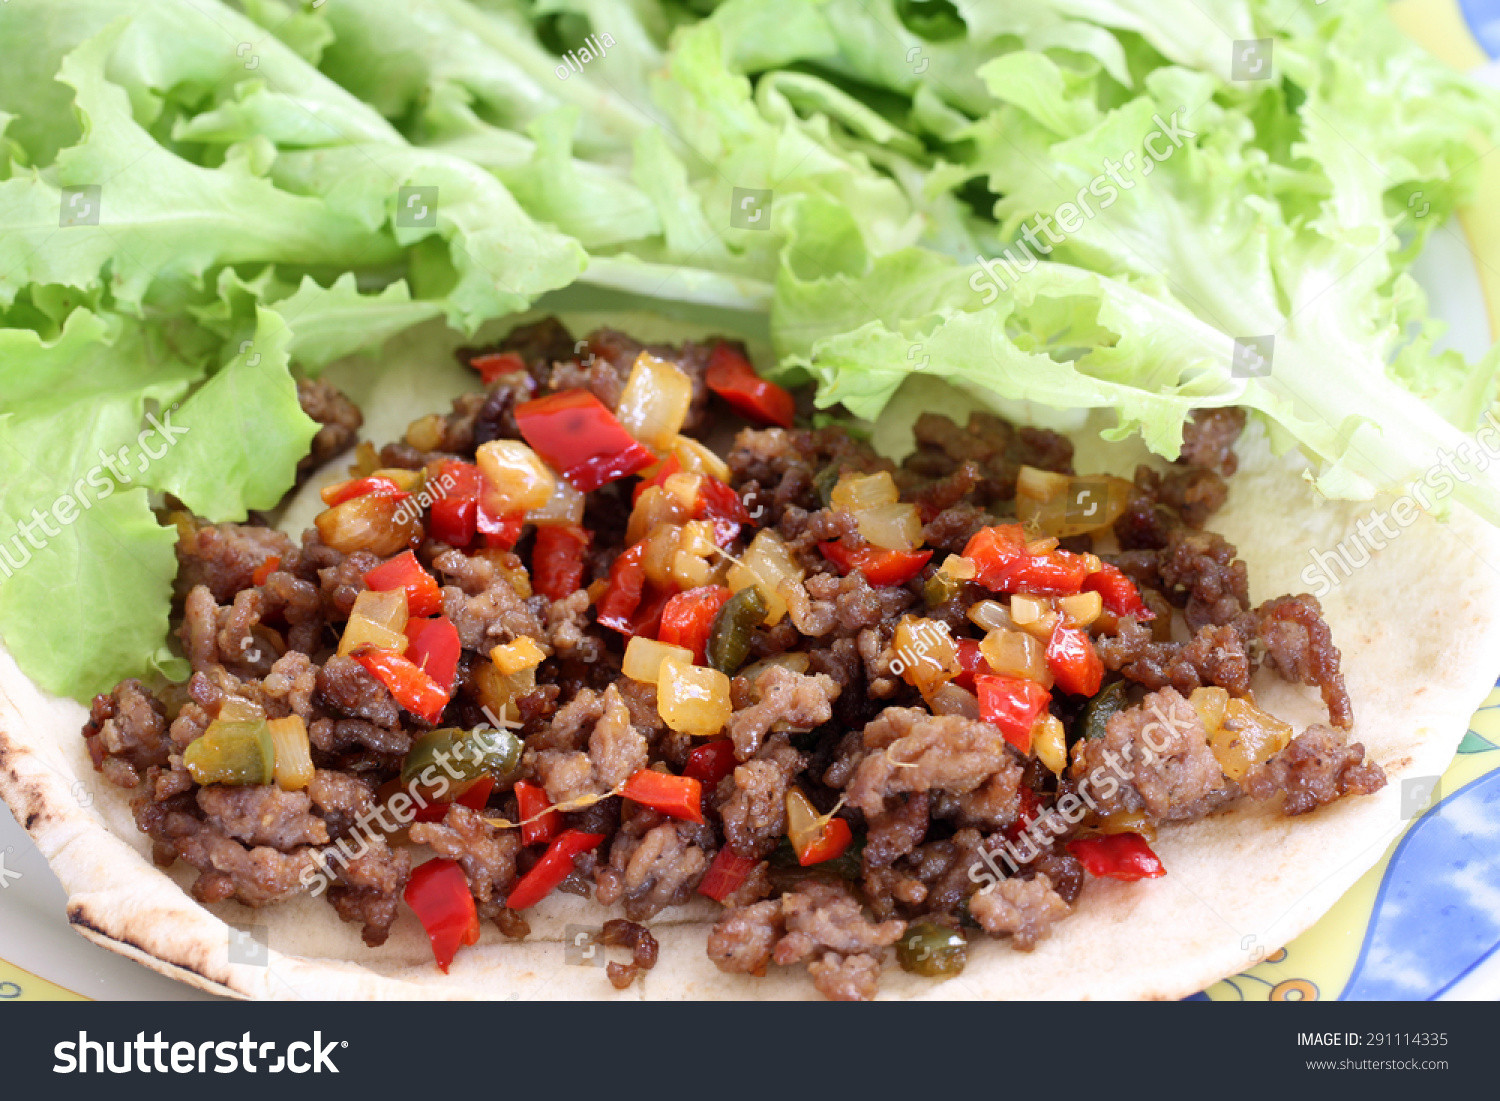 Healthy Beef Taco Salad  Healthy Eating Grilled Beef Taco Ve ables Stock